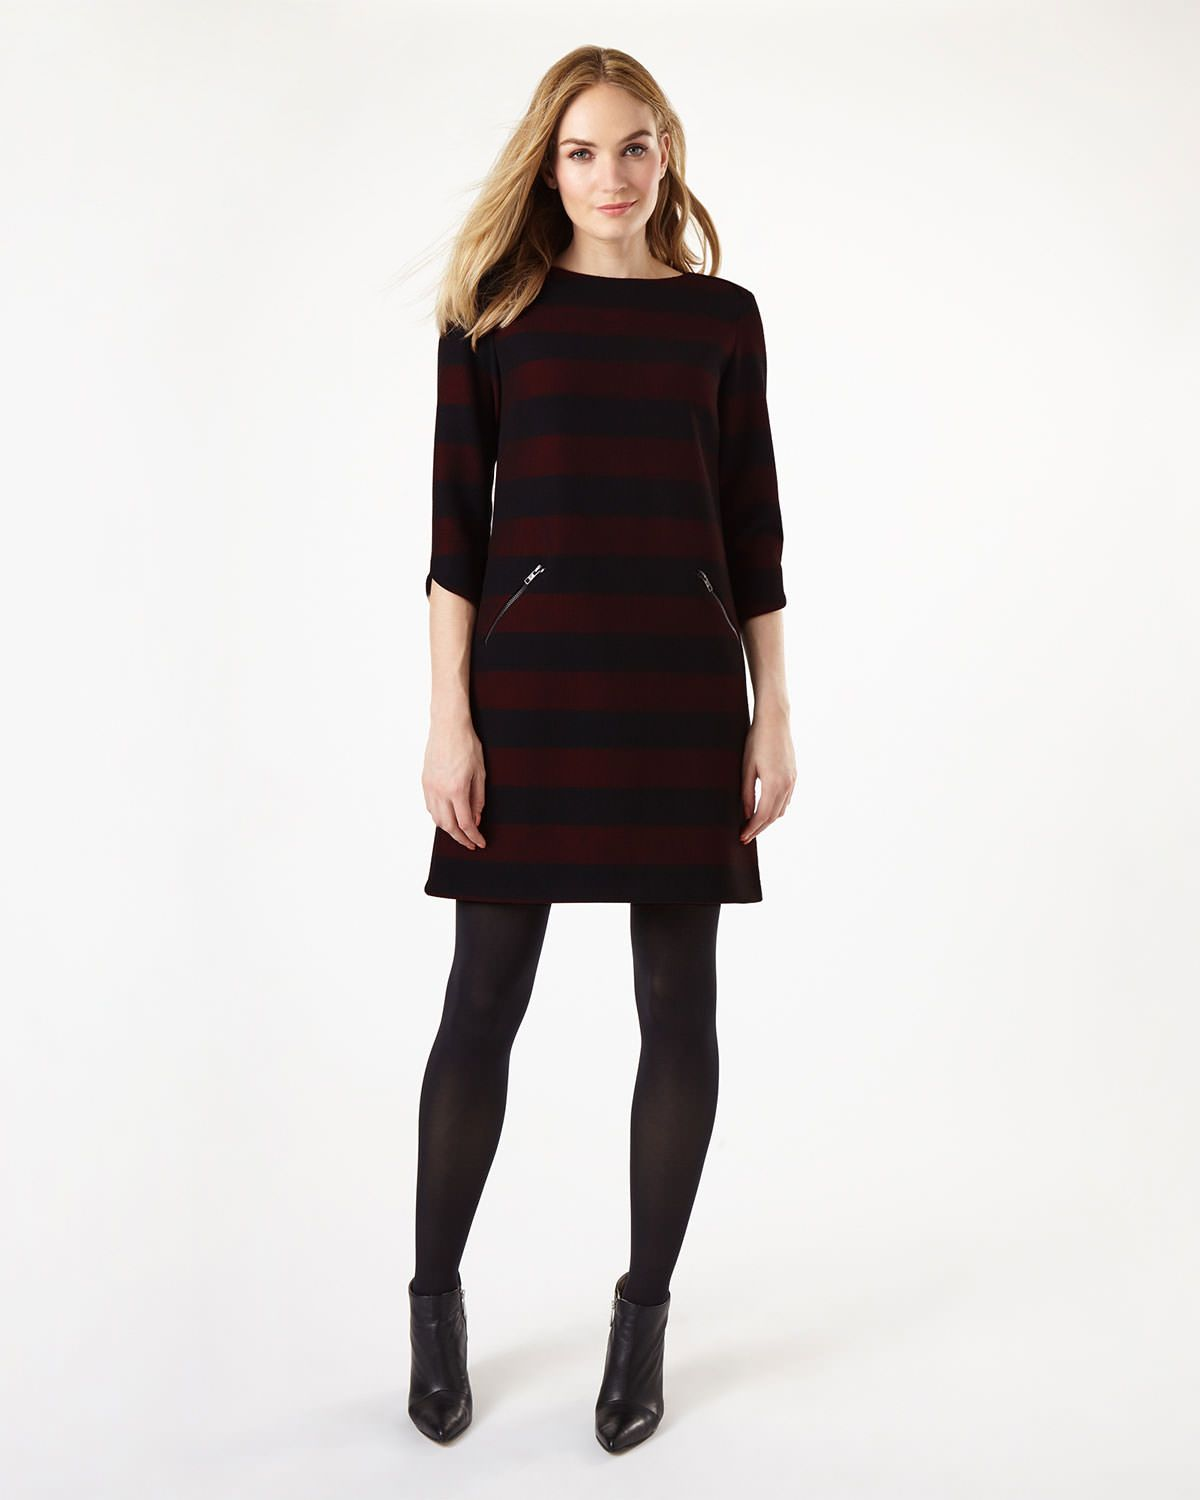 Phase eight sienna tunic dress red the colours are good for you